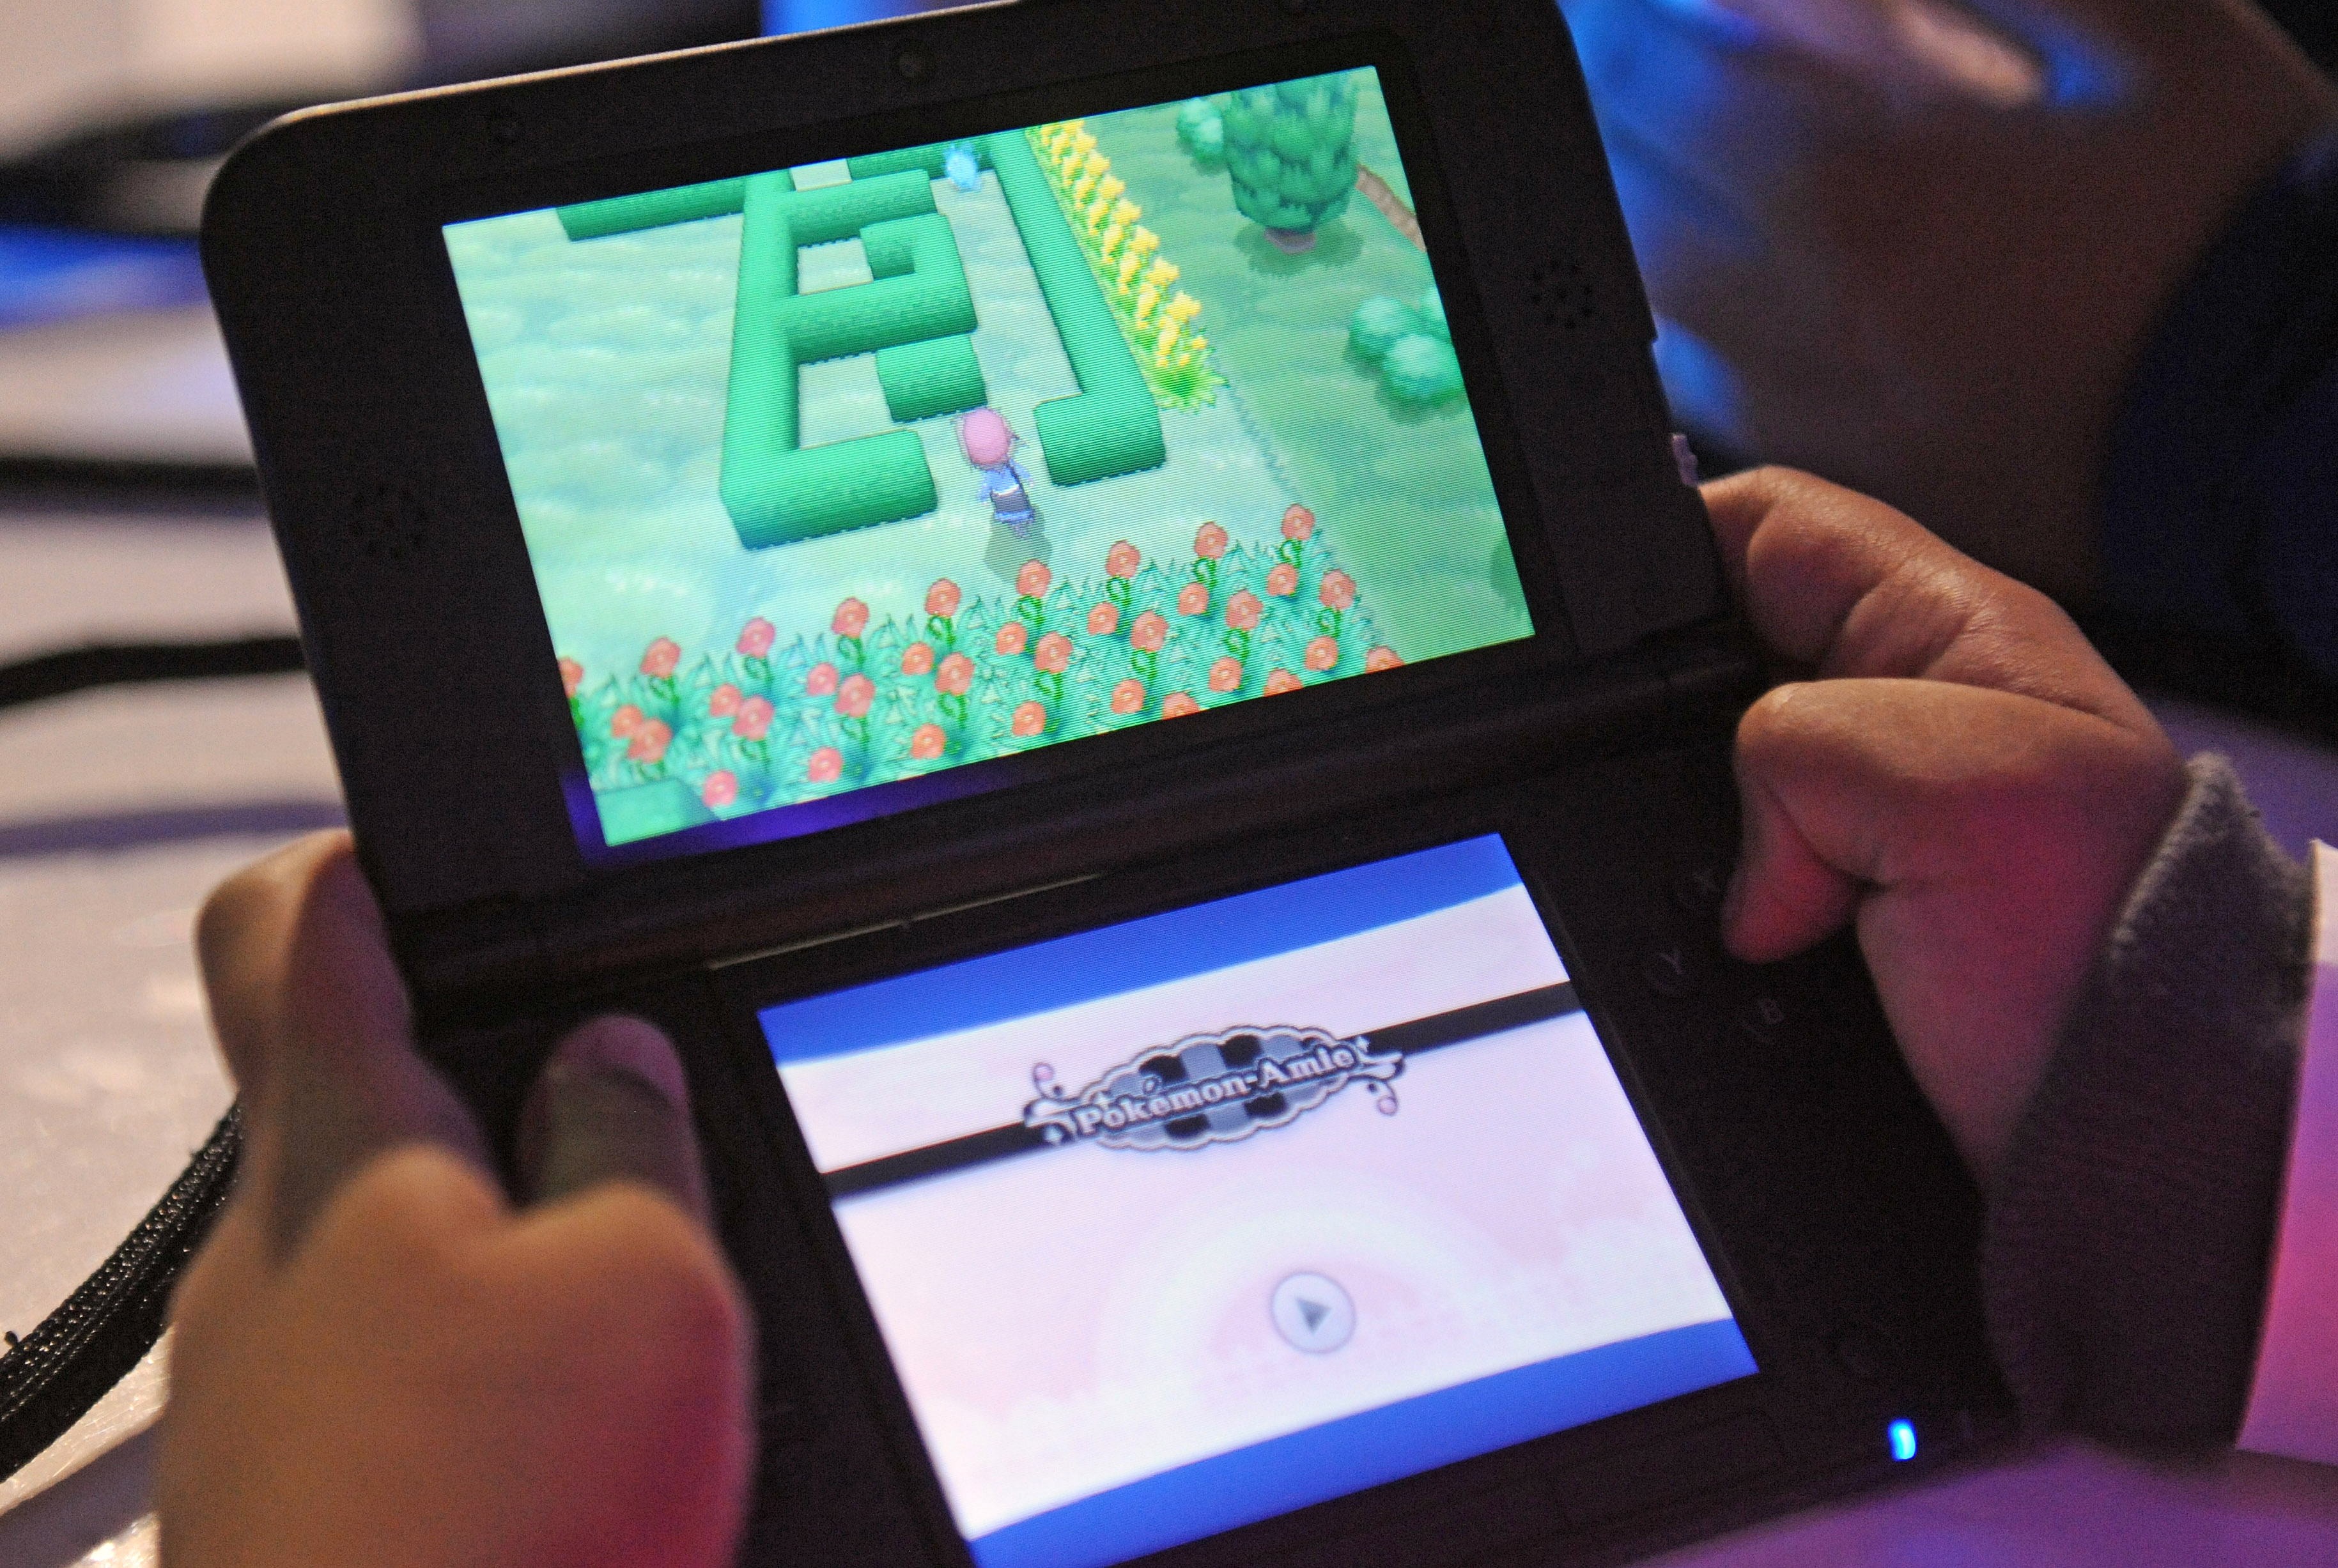 Attendees play a demo version of Pokemon X and Pokemon Y on the Nintendo 3DS at one of several kiosks  in New York on Friday, Oct. 11, 2013.The event celebrates the release of the two new games. Photographer: Louis Lanzano/ Bloomberg *** Local Caption *** Nintendo